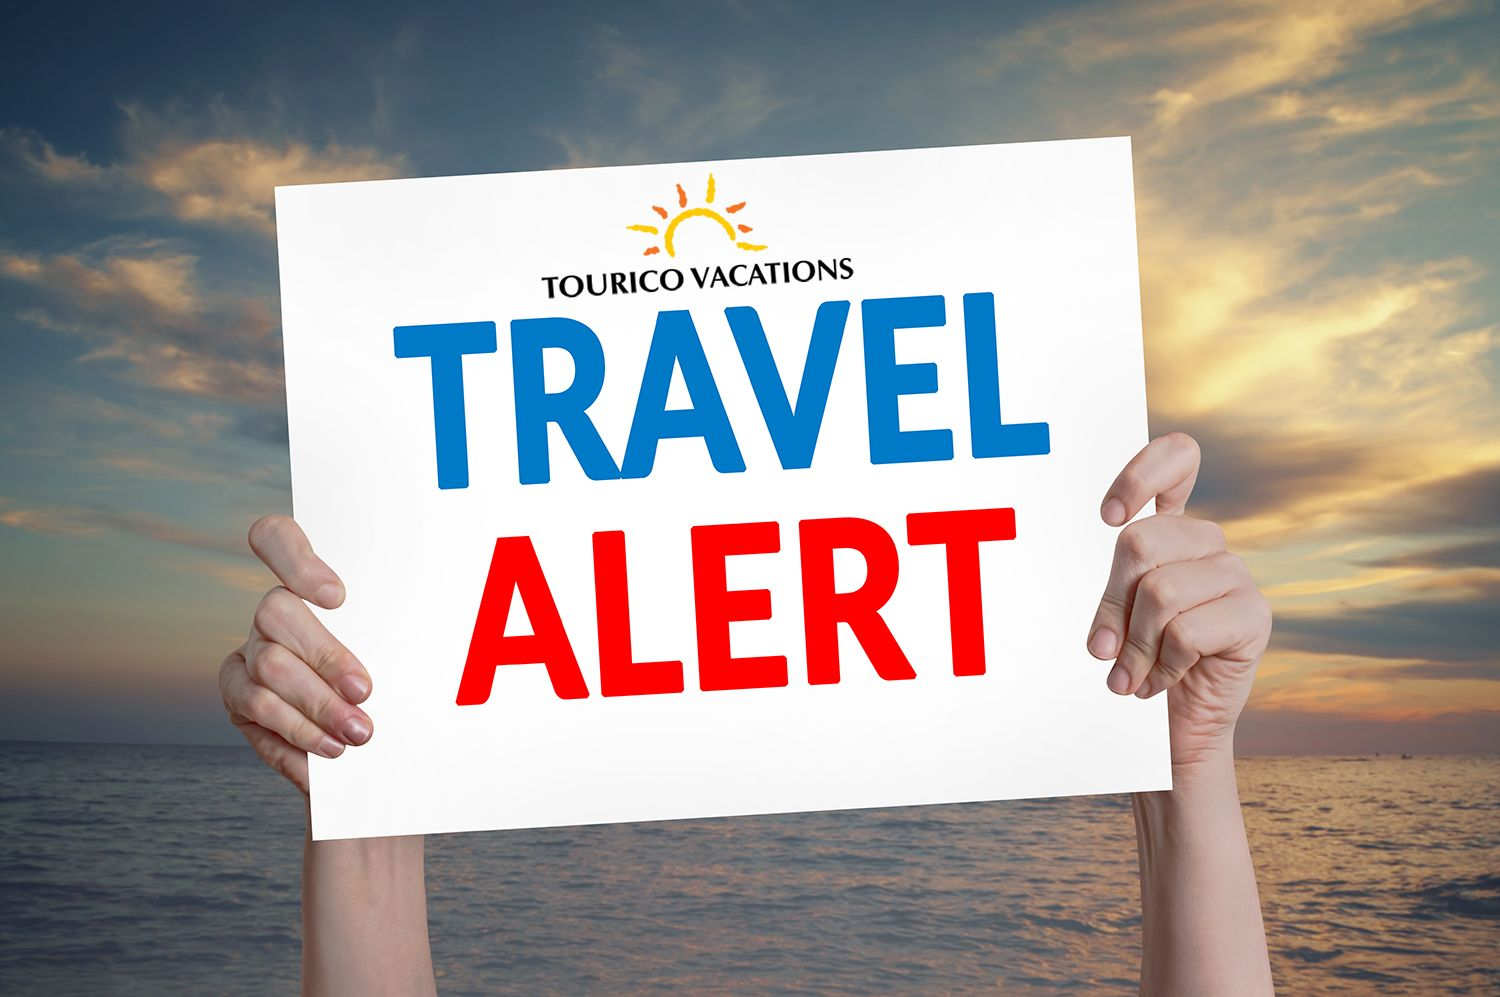 Tourico Vacations Reviews International Travel Advisories